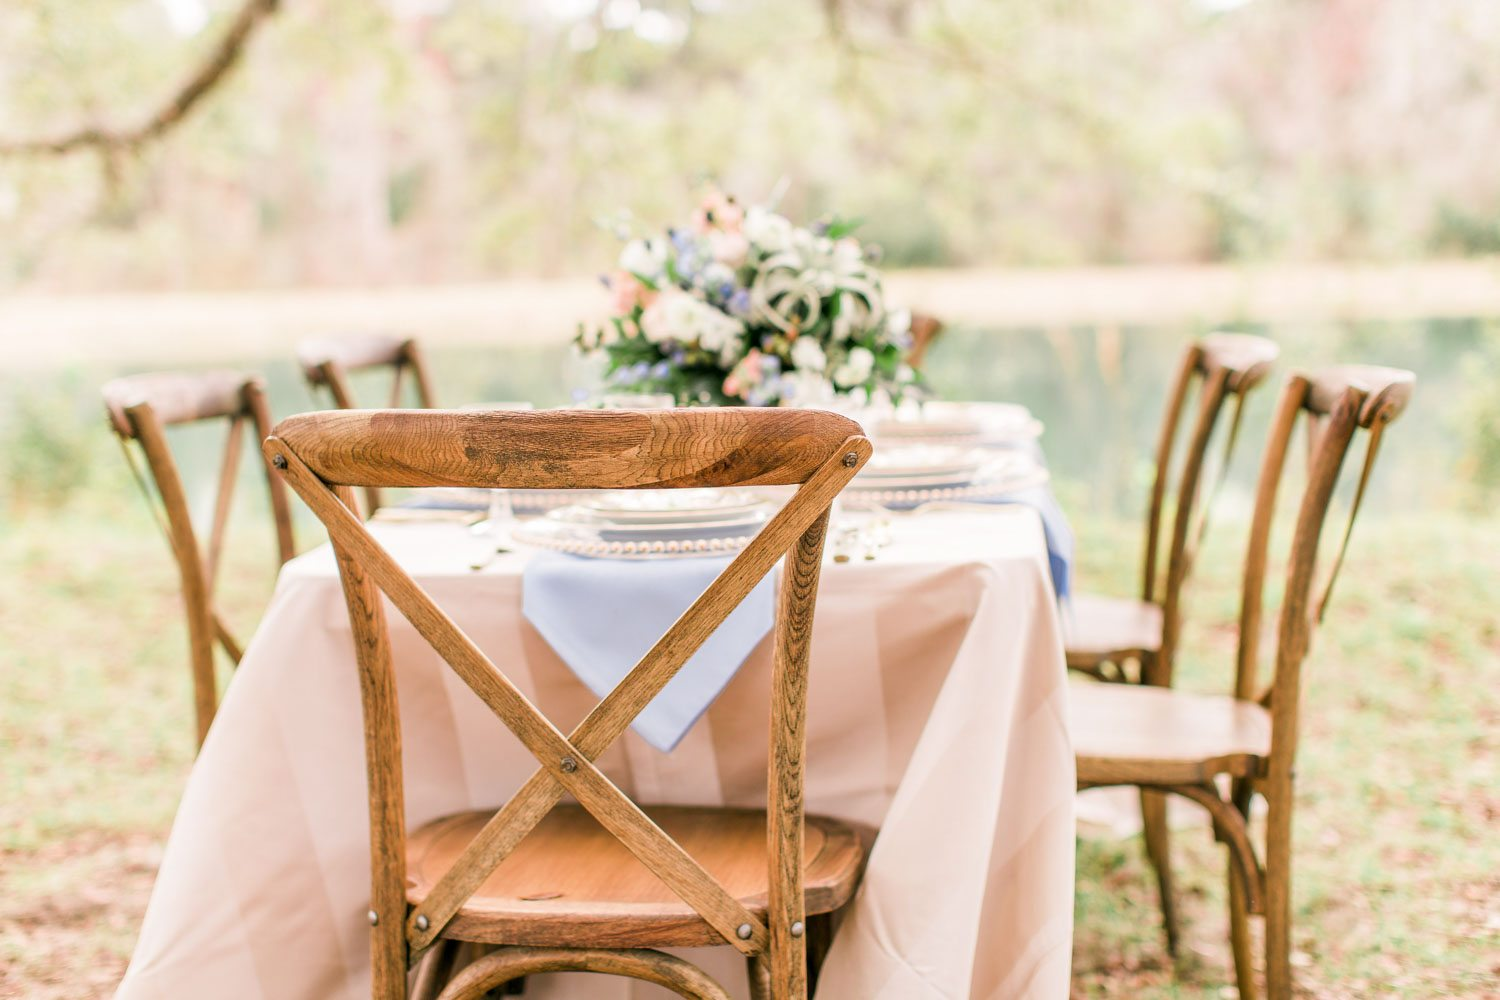 peach table clothed table with flowers and wooden chairs